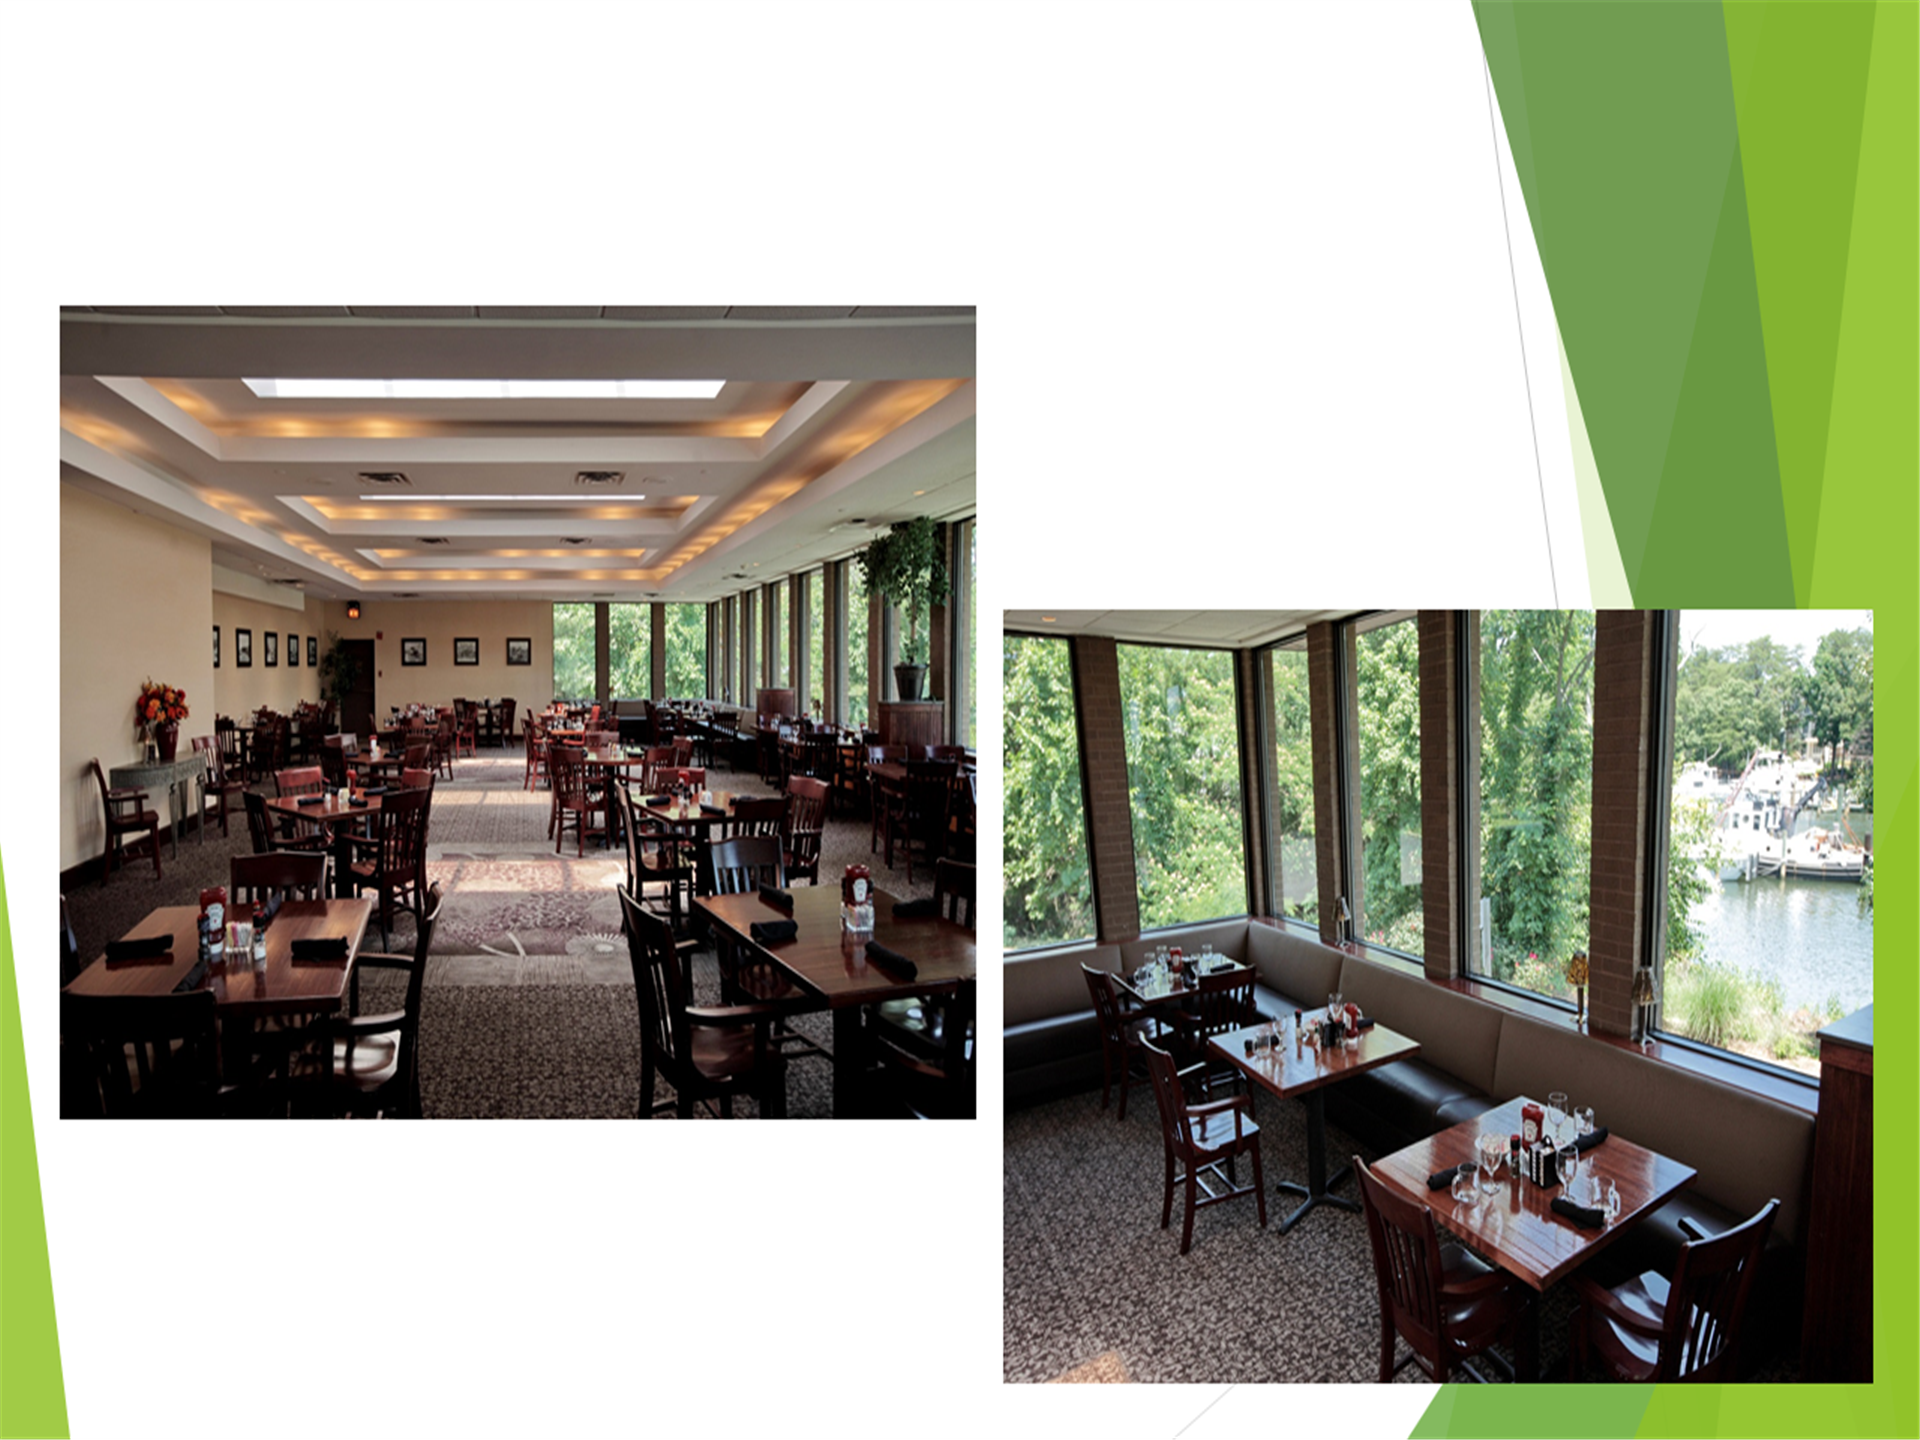 Two images of the dining room at Issac's Restaurant with tables set near windows that show views of the marina